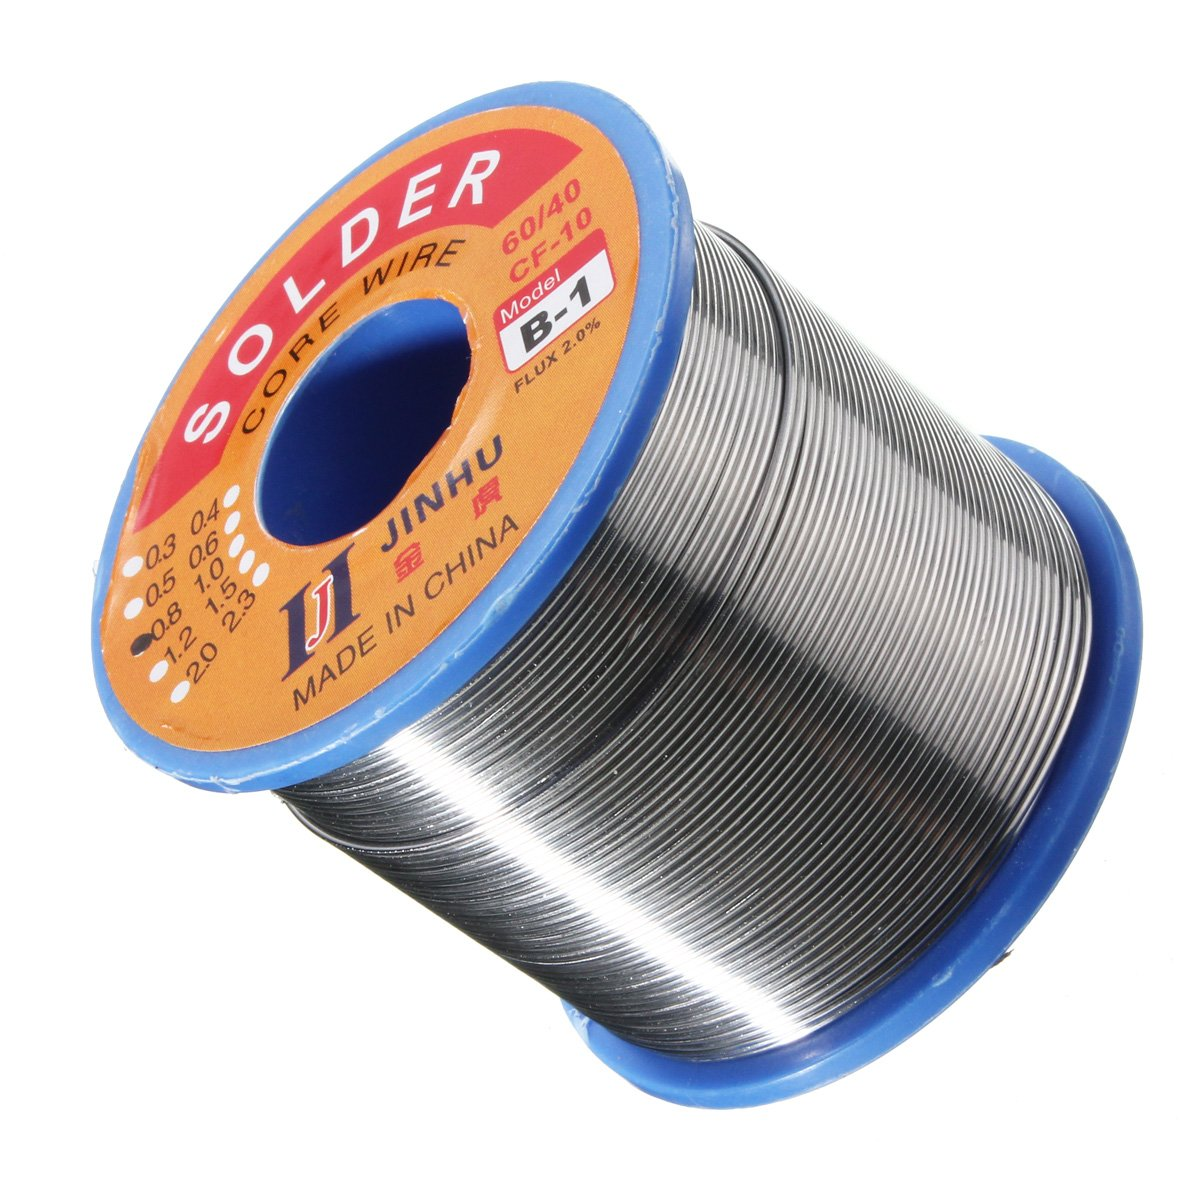 Flux 0.8mm Dia Soldering Solder Wire Reel 400g 60//40 Tin Lead 1.8-2.2/%